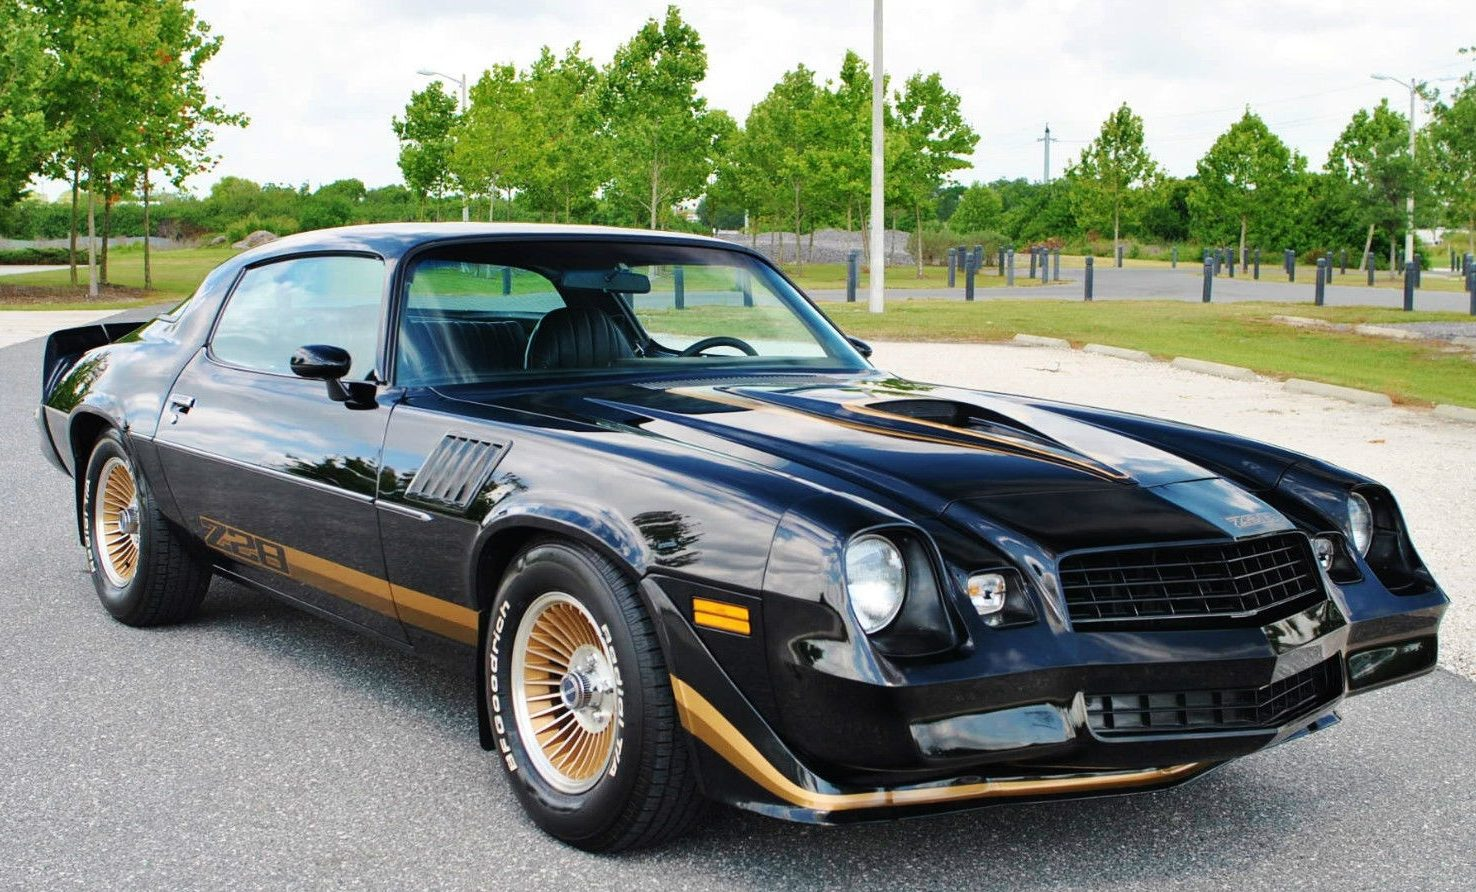 1979 Camaro Z28 For Sale Project Car Autos Post